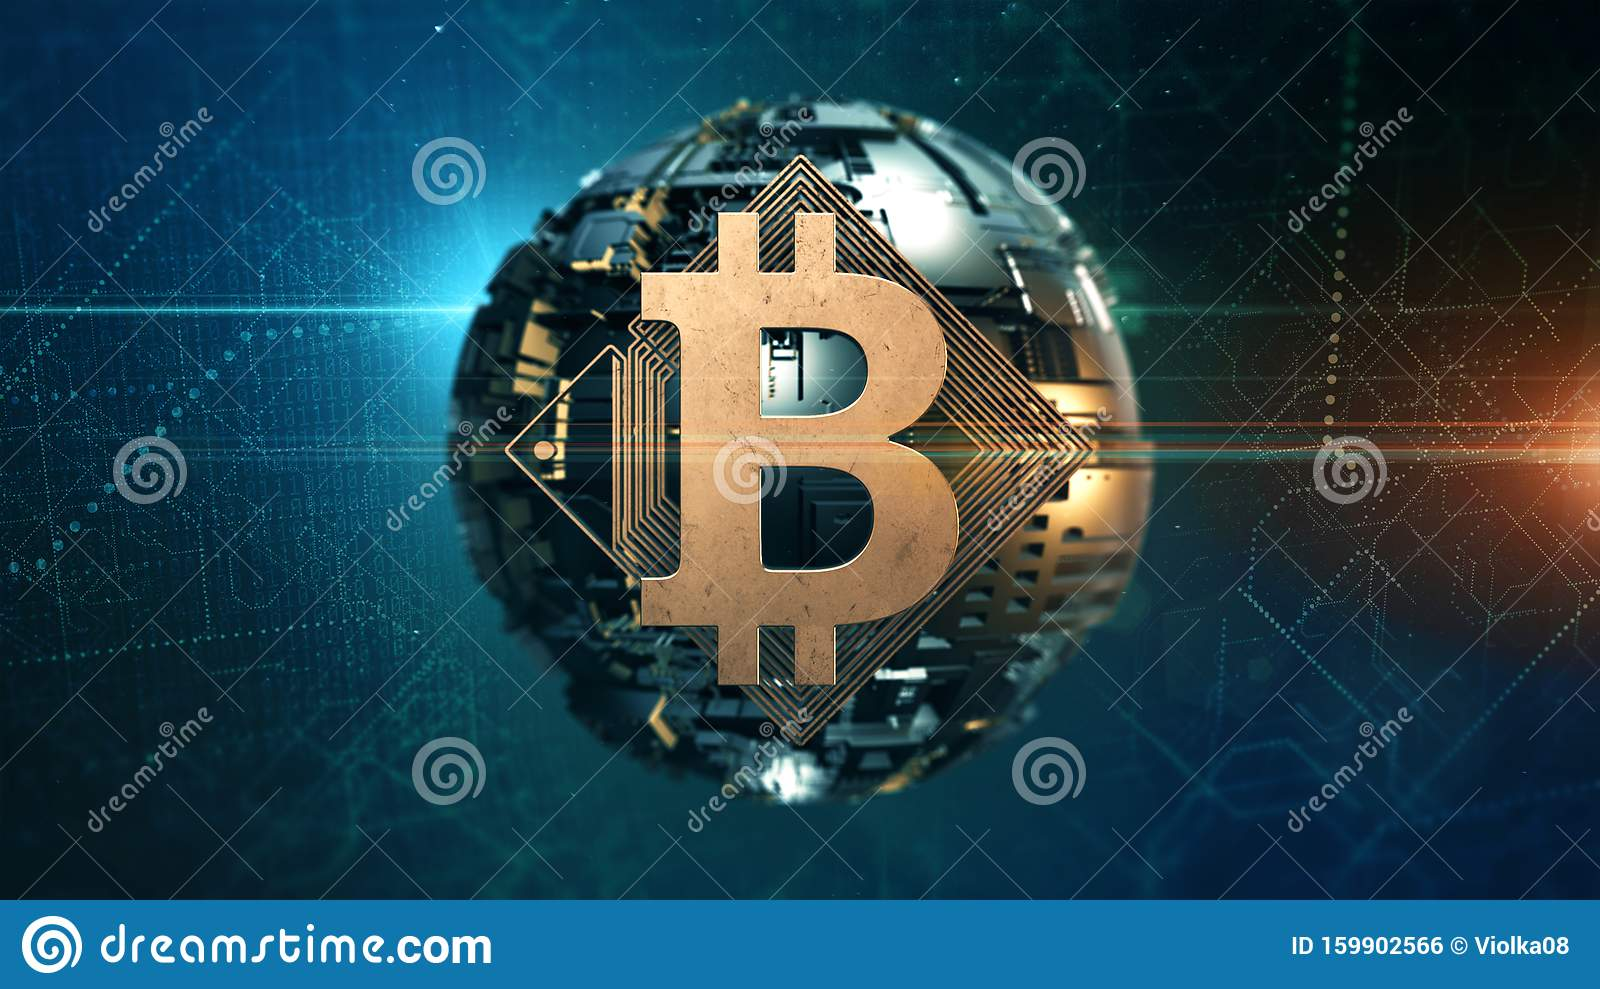 how is cryptocurrency an investment